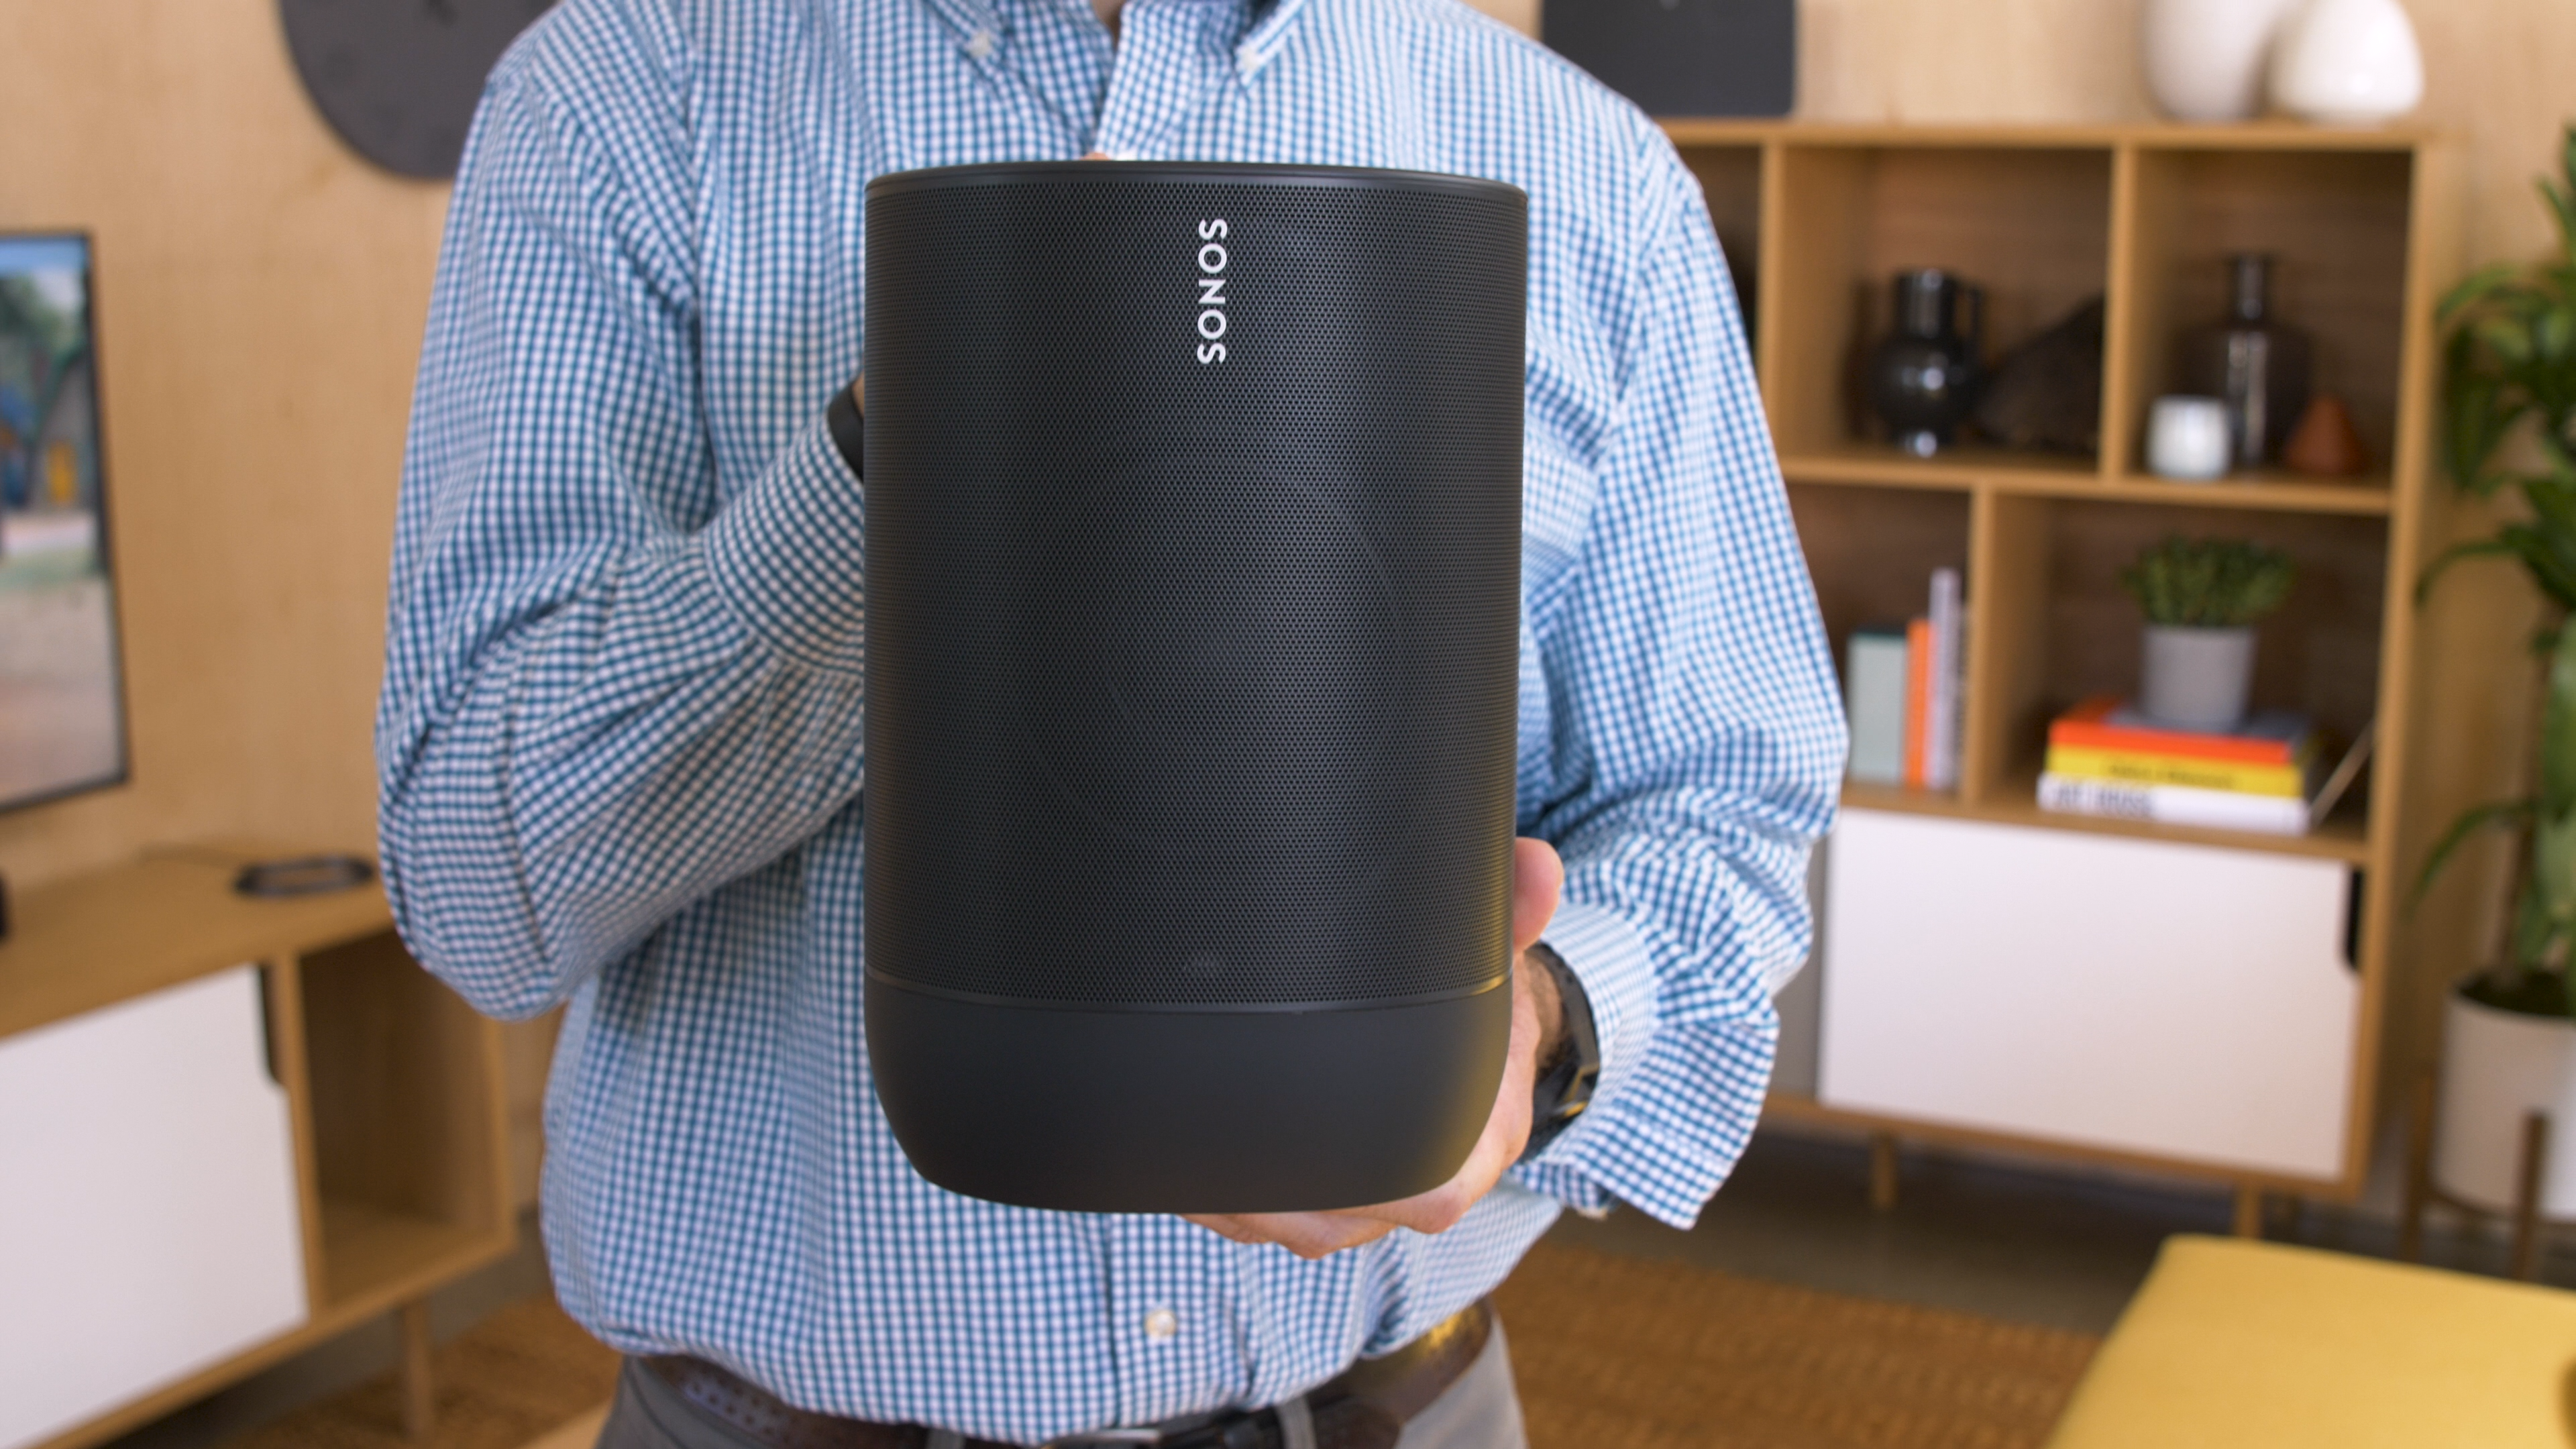 Video: Sonos Move is both an indoor and outdoor wireless speaker